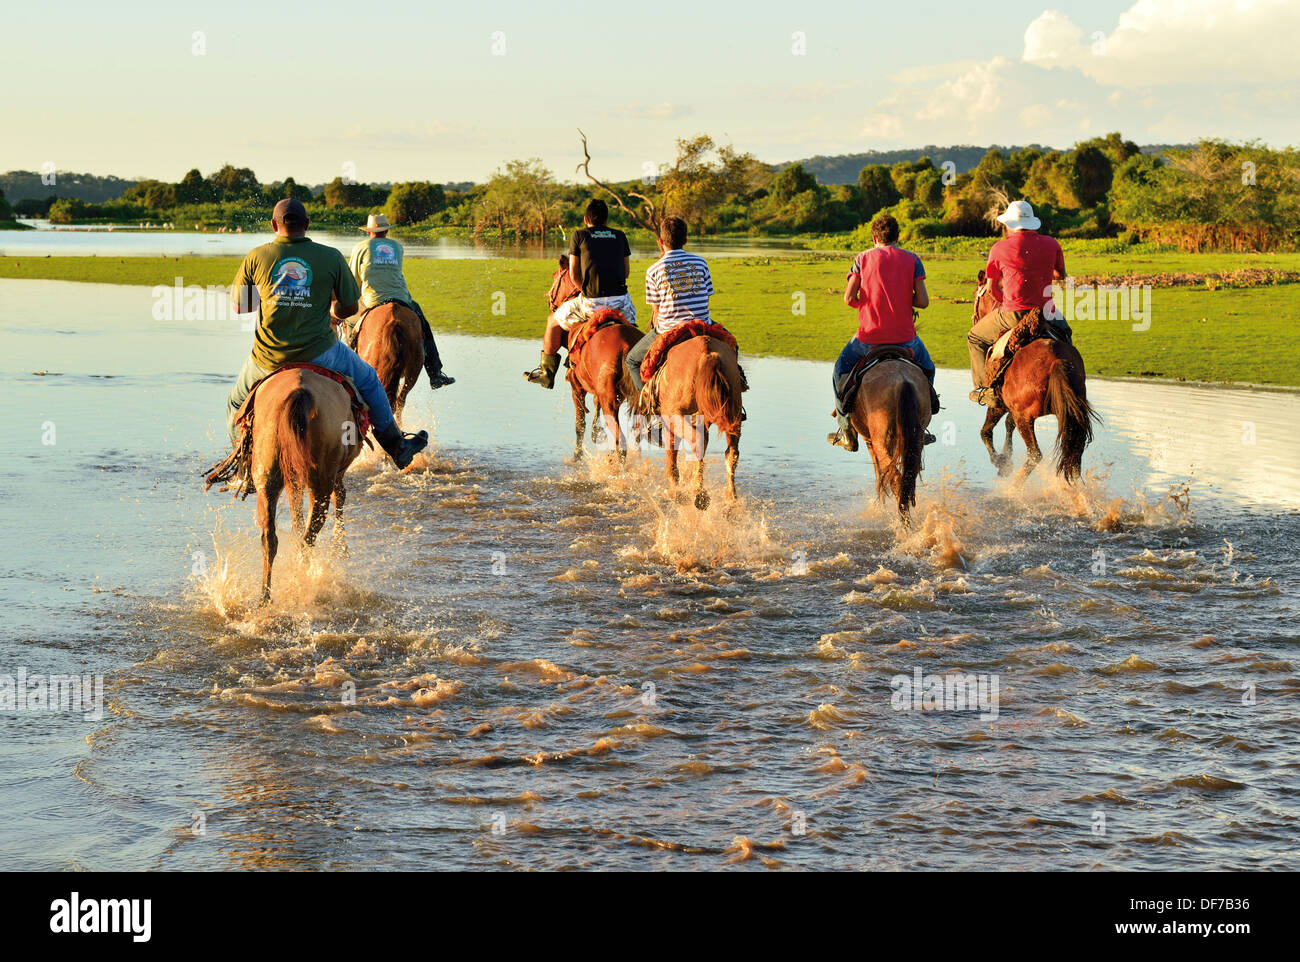 Brazil, Pantanal: Horse gallop with a group of men of Pousada Rio Mutum in Barao de Melgaco - Stock Image